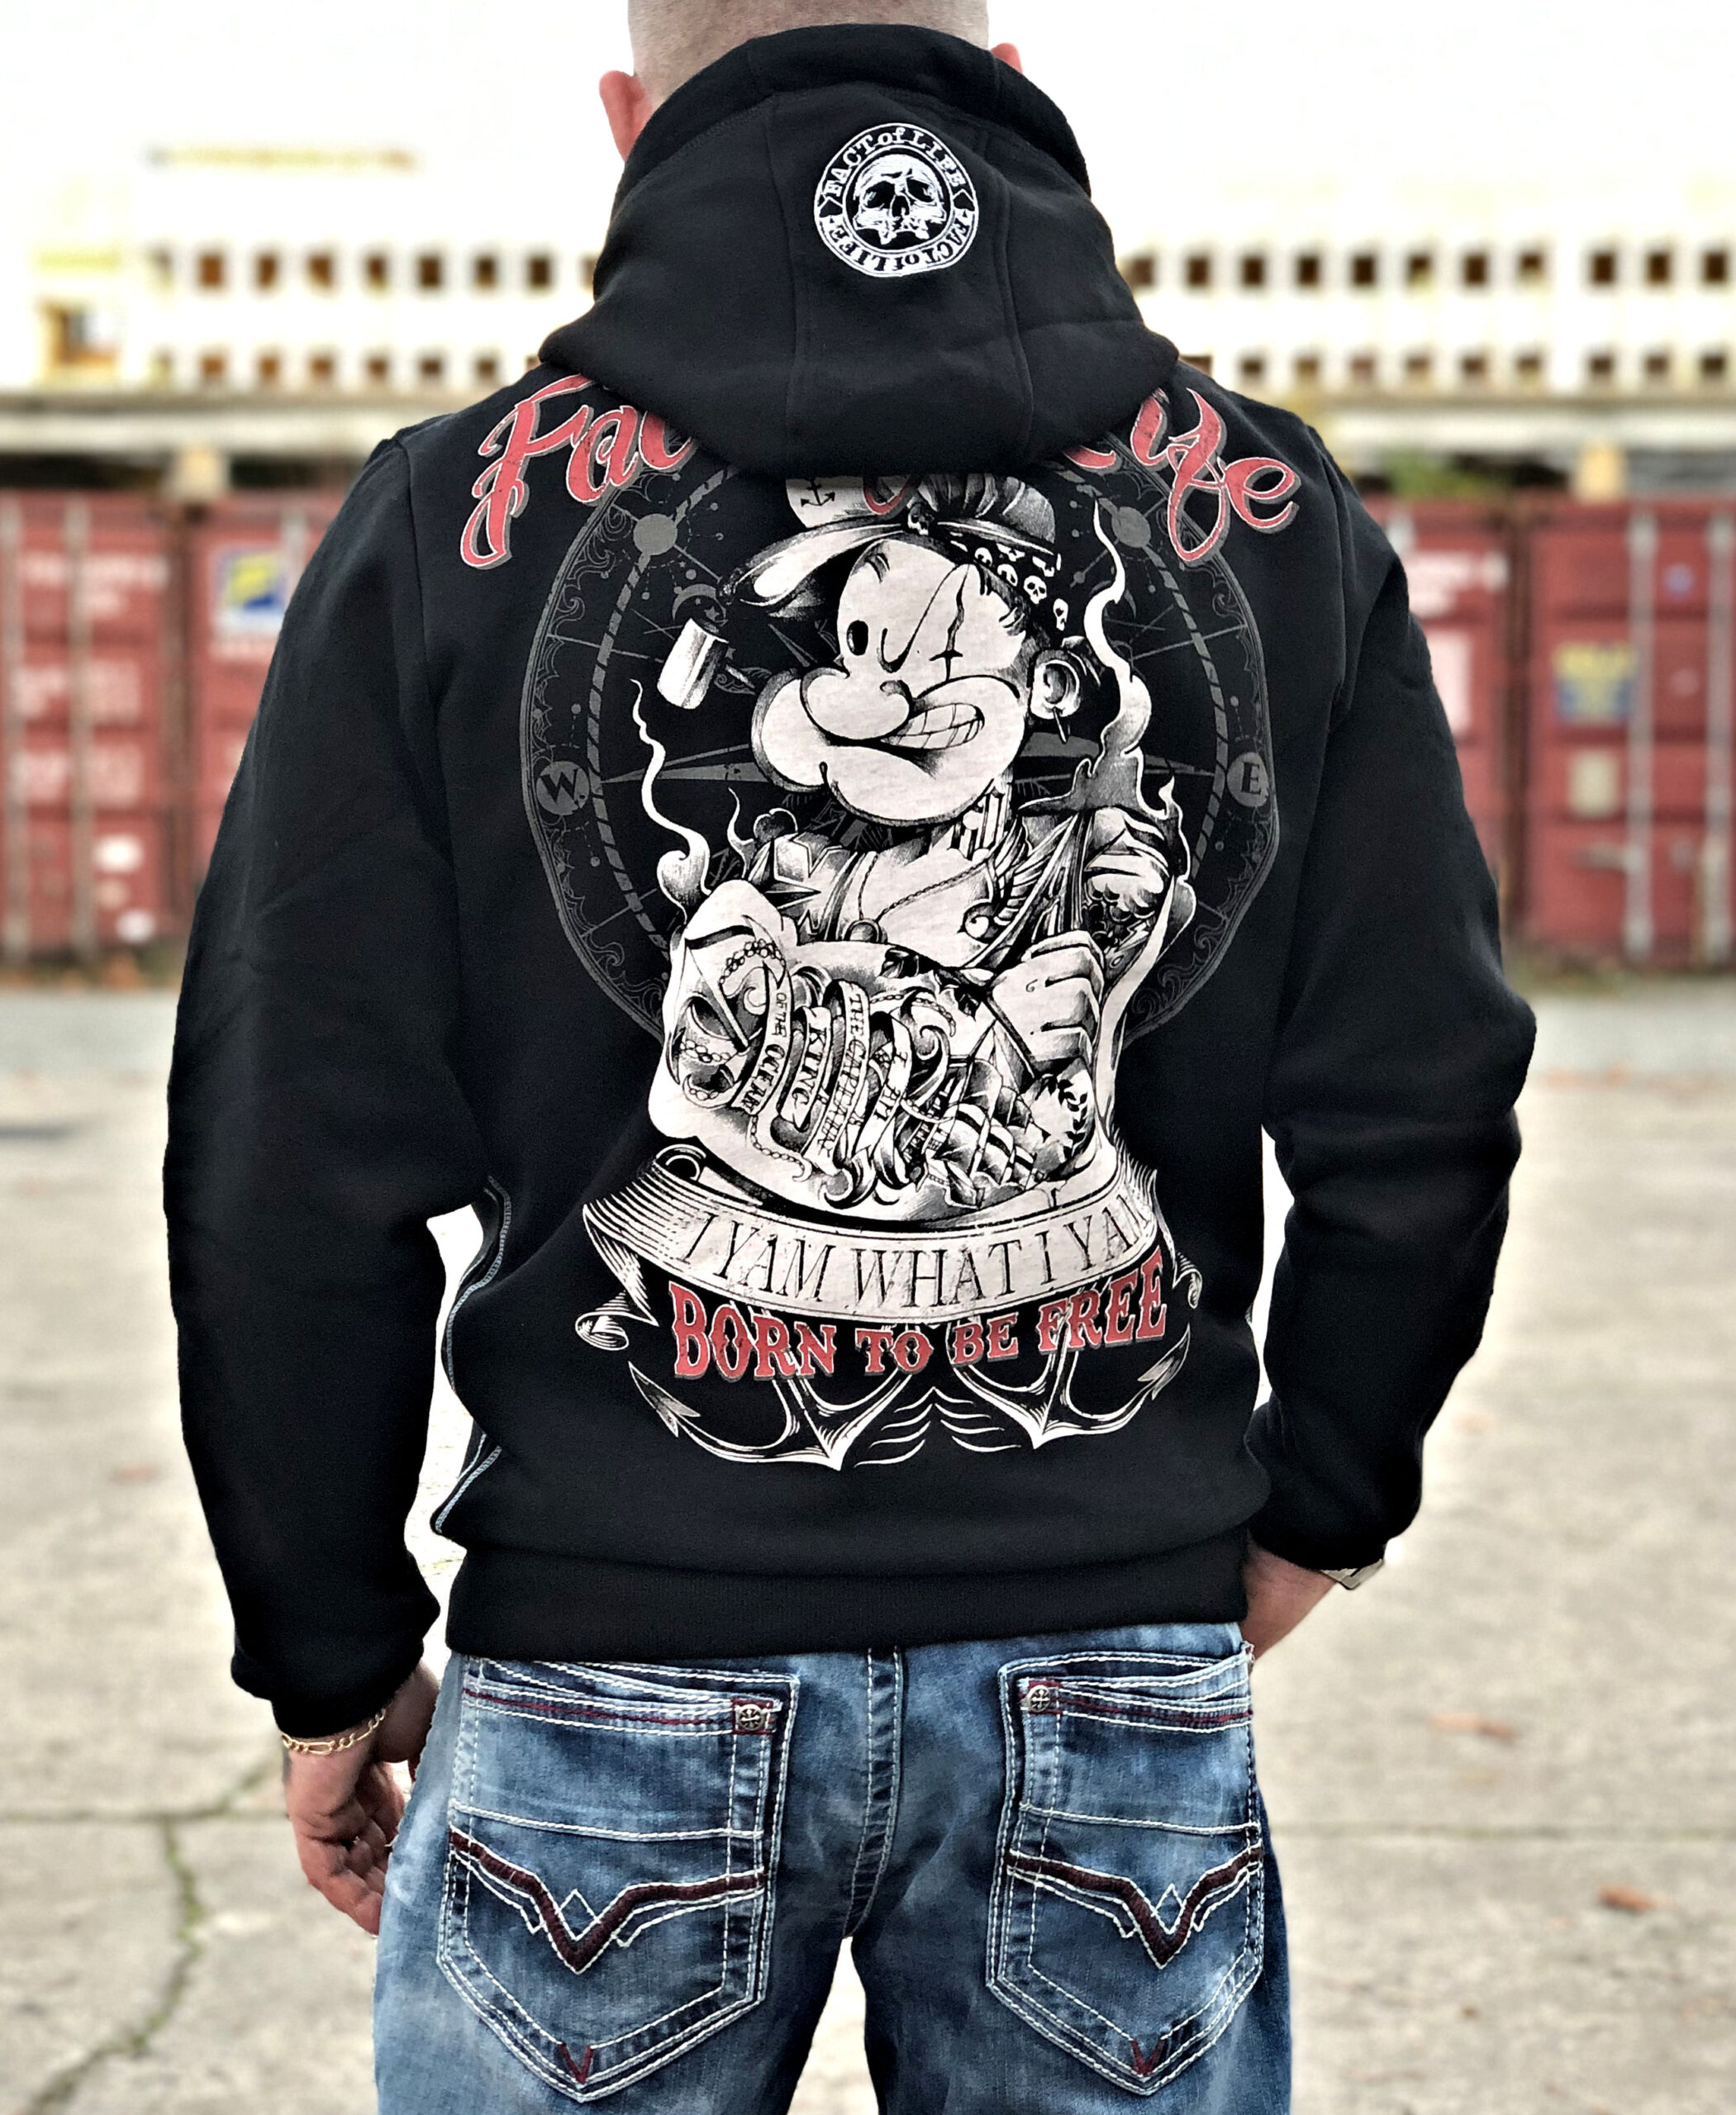 Fact of Life Born To Be Free Hoodie